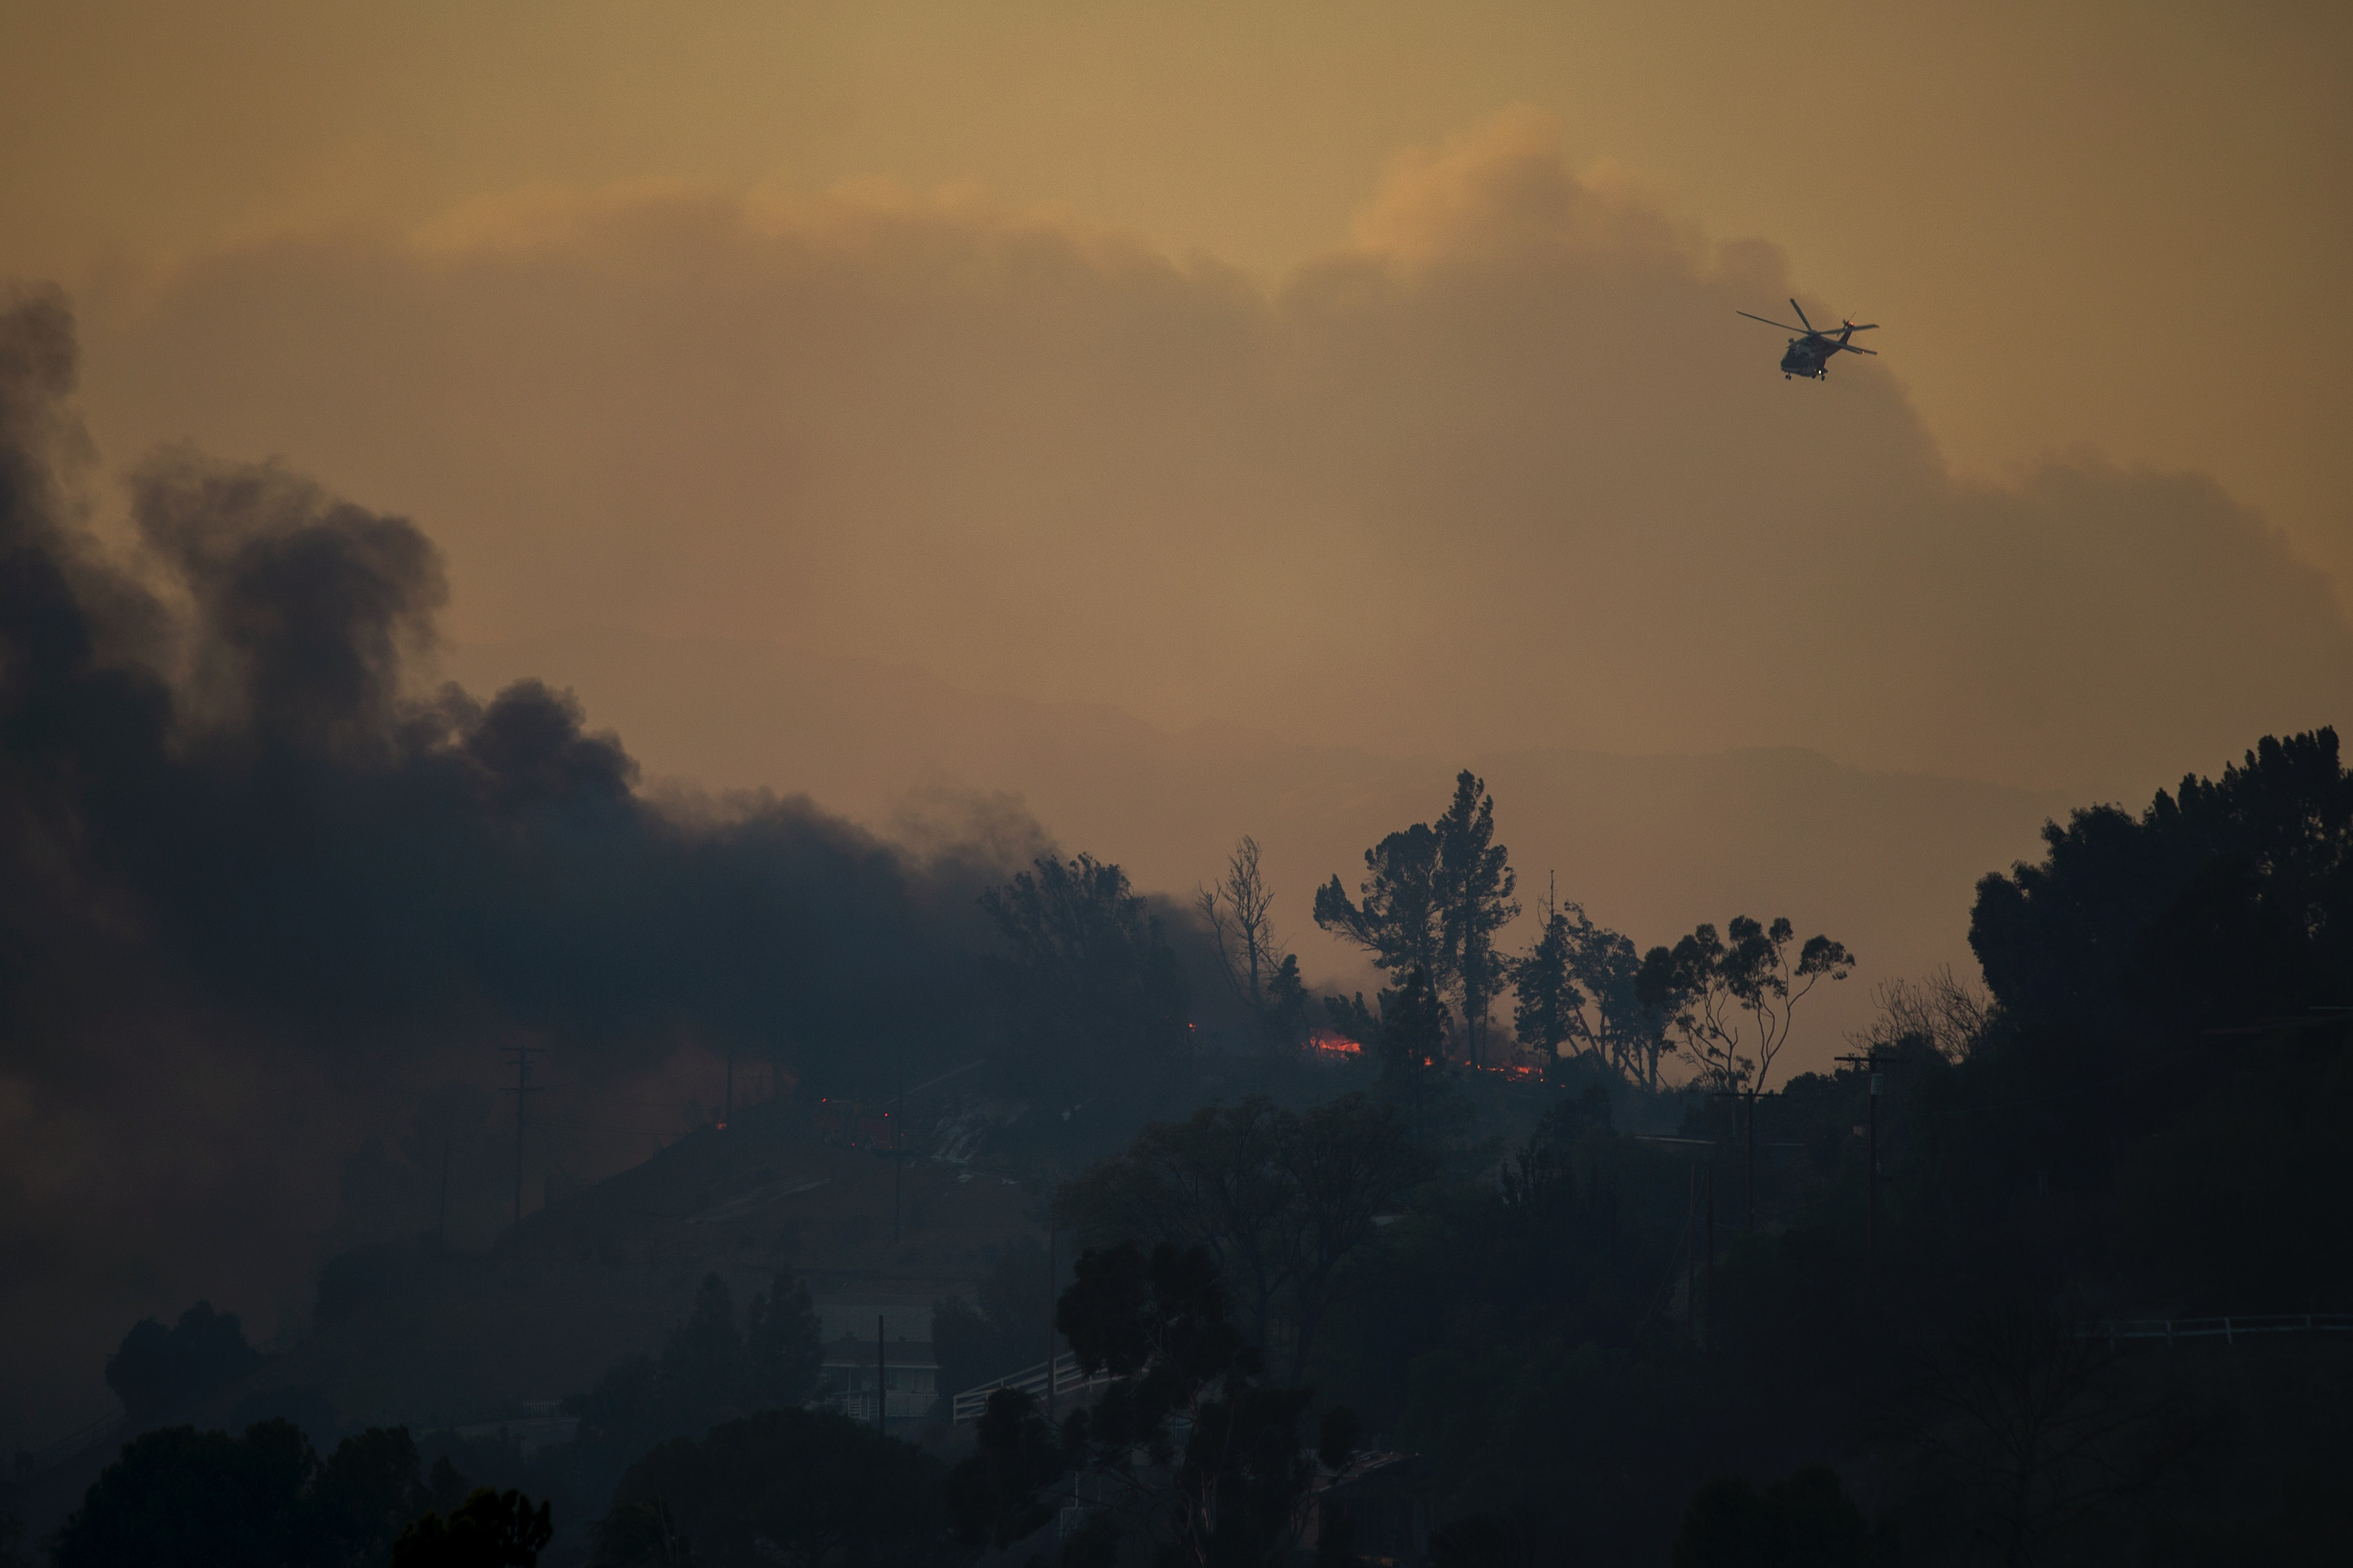 Are The Southern California Fires Affecting Flights? Los